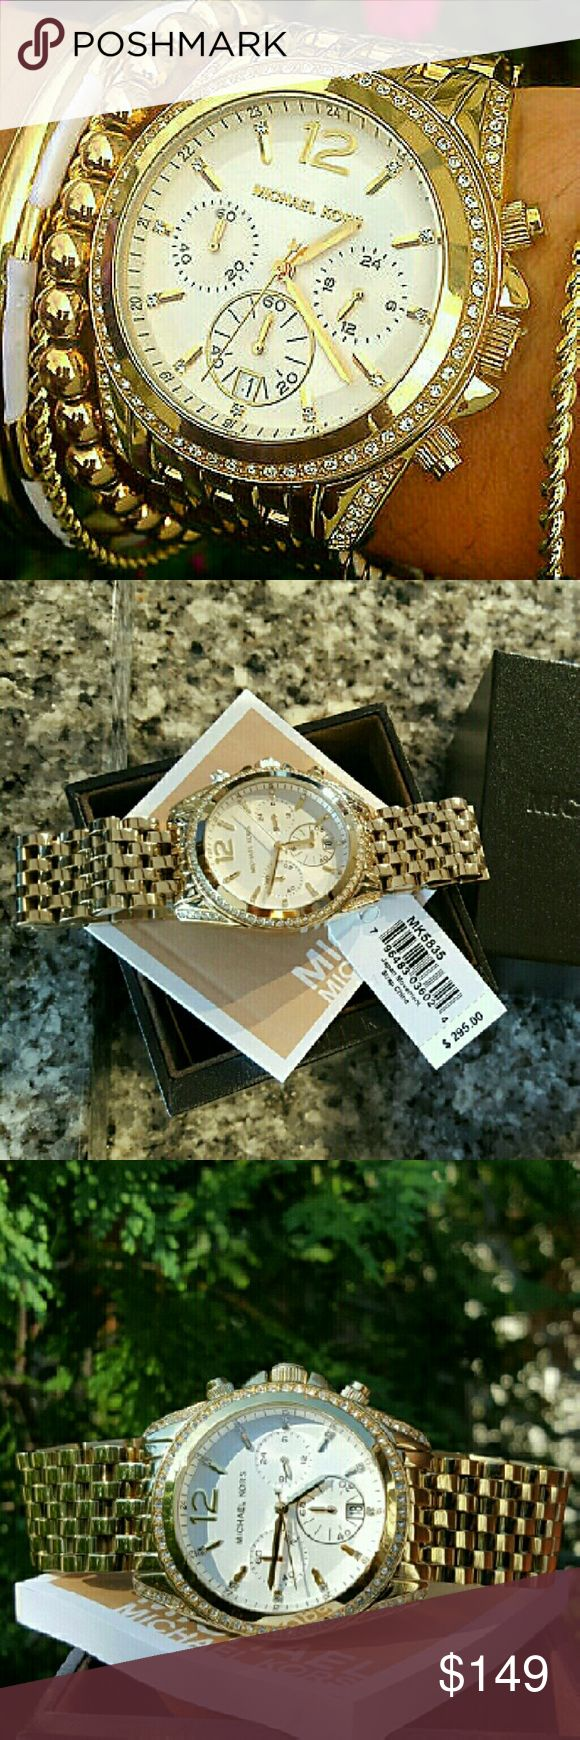 Michael Kors gold Pressley bracelet watch MK5835 Last 1!  Guaranteed Authentic MK5835  * Model: Pressley  * Retail: $295  * Gold stainless steel band  * Mother of pearl chronograph glitz dial  *New with Michael Kors watch case and owners booklet included  * 39mm  * 10 ATM  * UPC: 796483036924  * WHAT A BEAUTY!  * No trades, buy now or offer only. Shipped same business day Michael Kors Accessories Watches